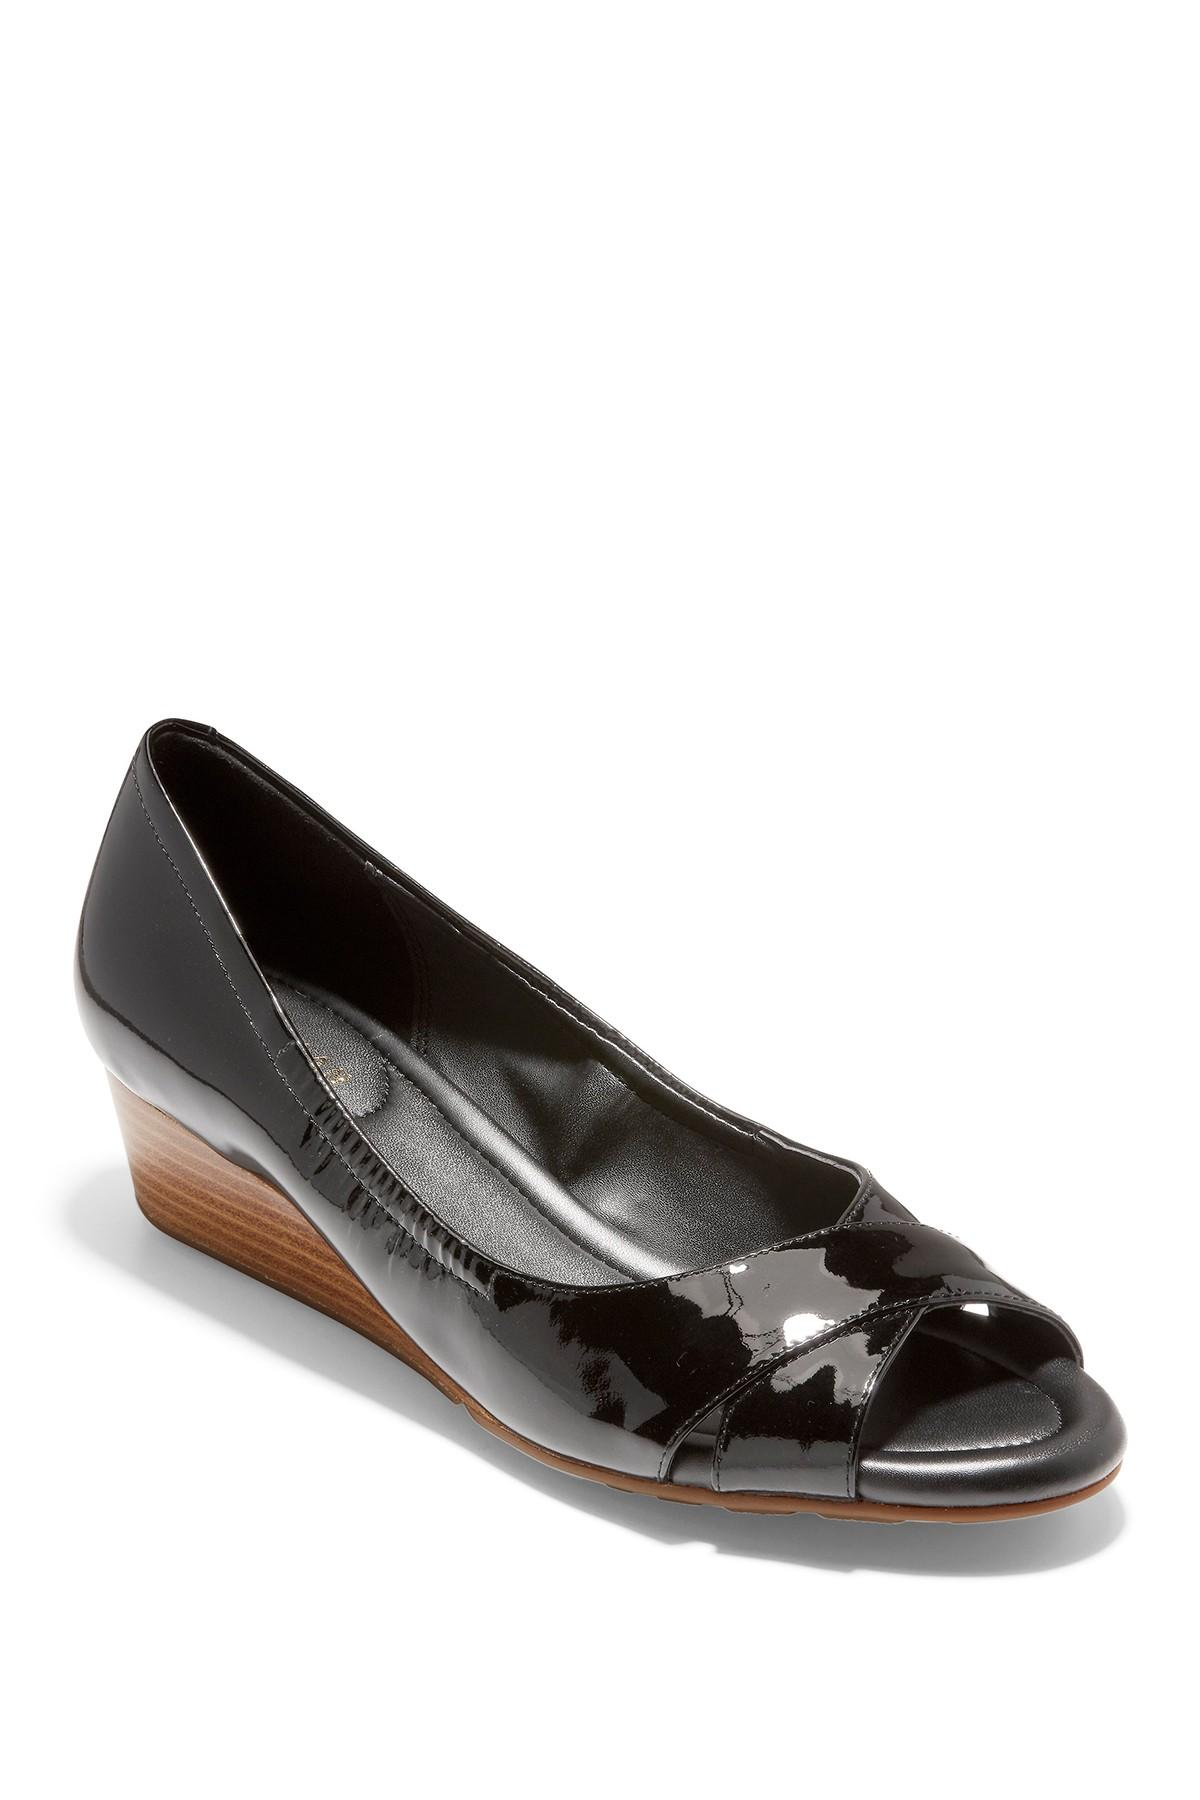 92b71a82ec Lyst - Cole Haan Melina Patent Open Toe Wedge in Black